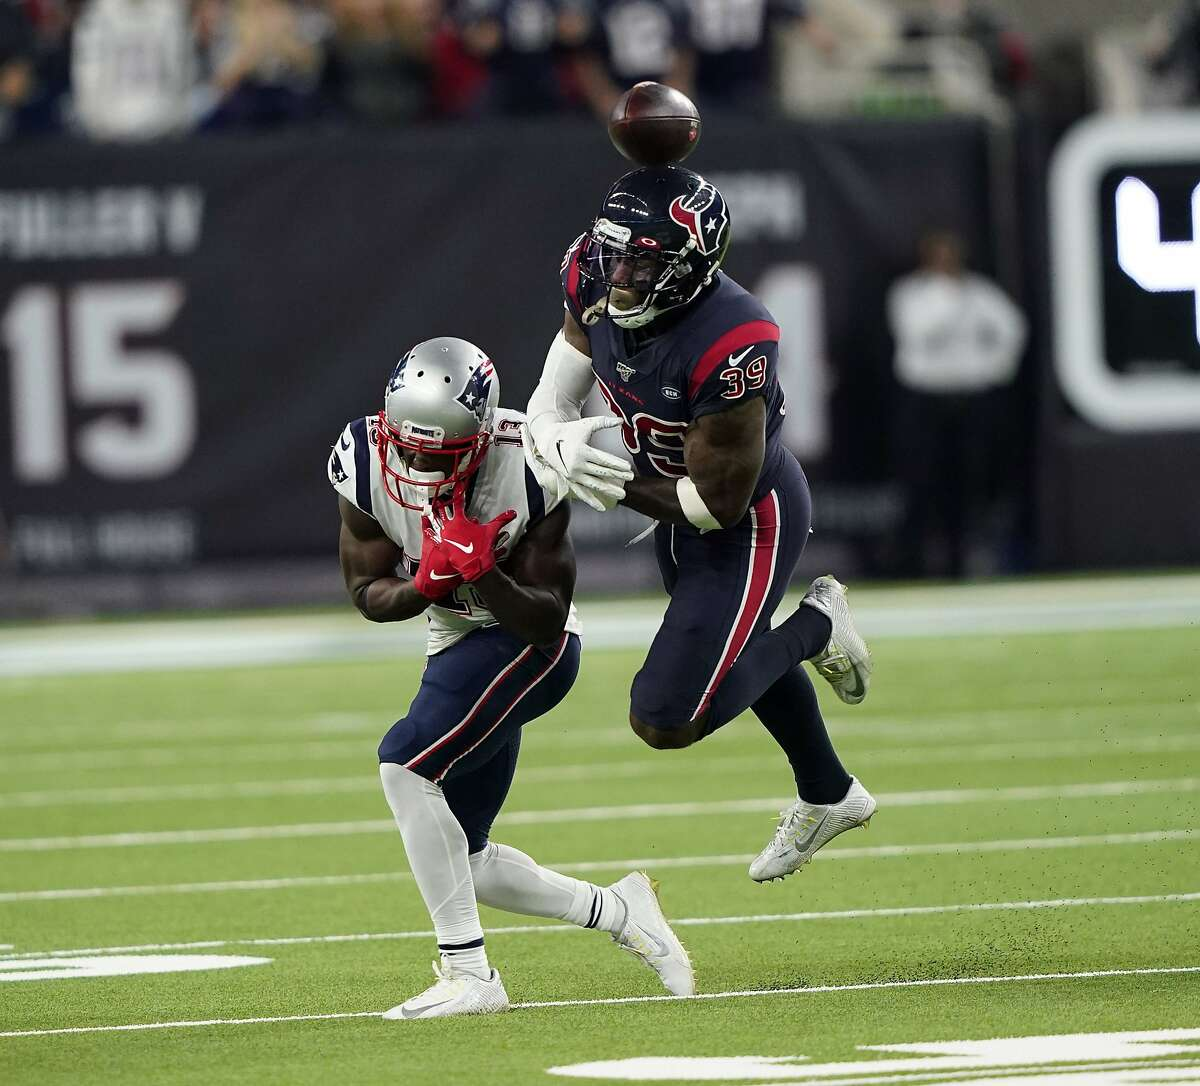 Houston Texans free safety Tashaun Gipson breaks up a pass intended for New England Patriots wide receiver Phillip Dorsett (13) during the second half of an NFL football game Sunday, Dec. 1, 2019, in Houston. (AP Photo/David J. Phillip)